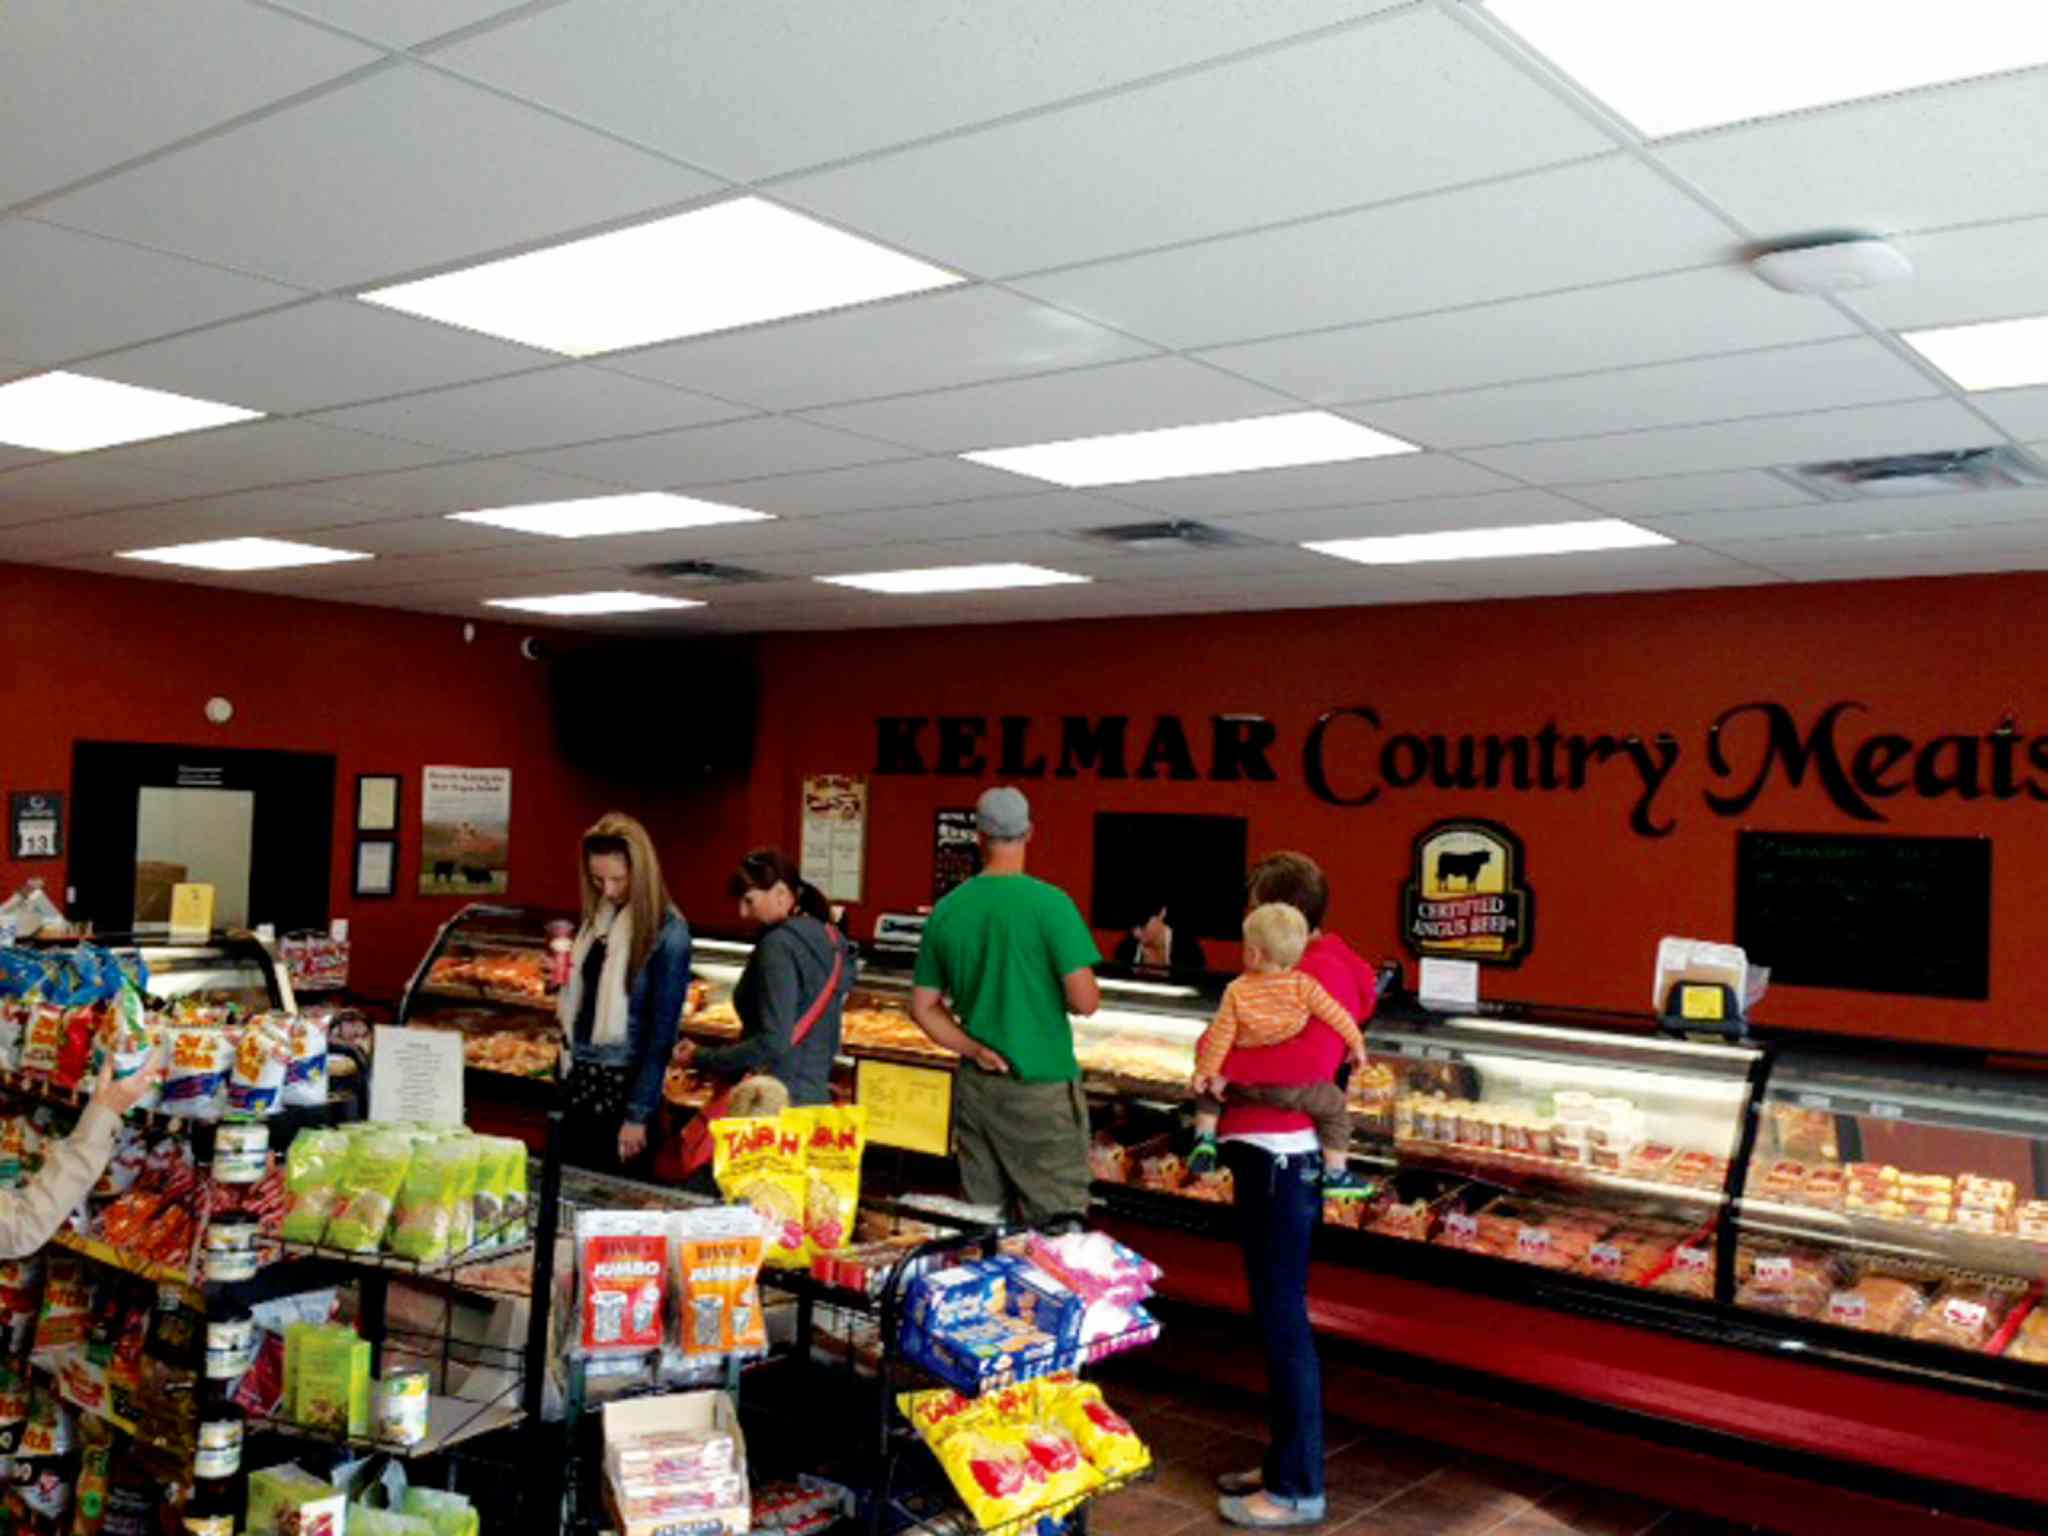 Kelmar Country Meats marked its one-year anniversary with a celebration at its 7-925 Headmaster Row location on Sept. 14. It also marked the opening of a new bakery at the same time.